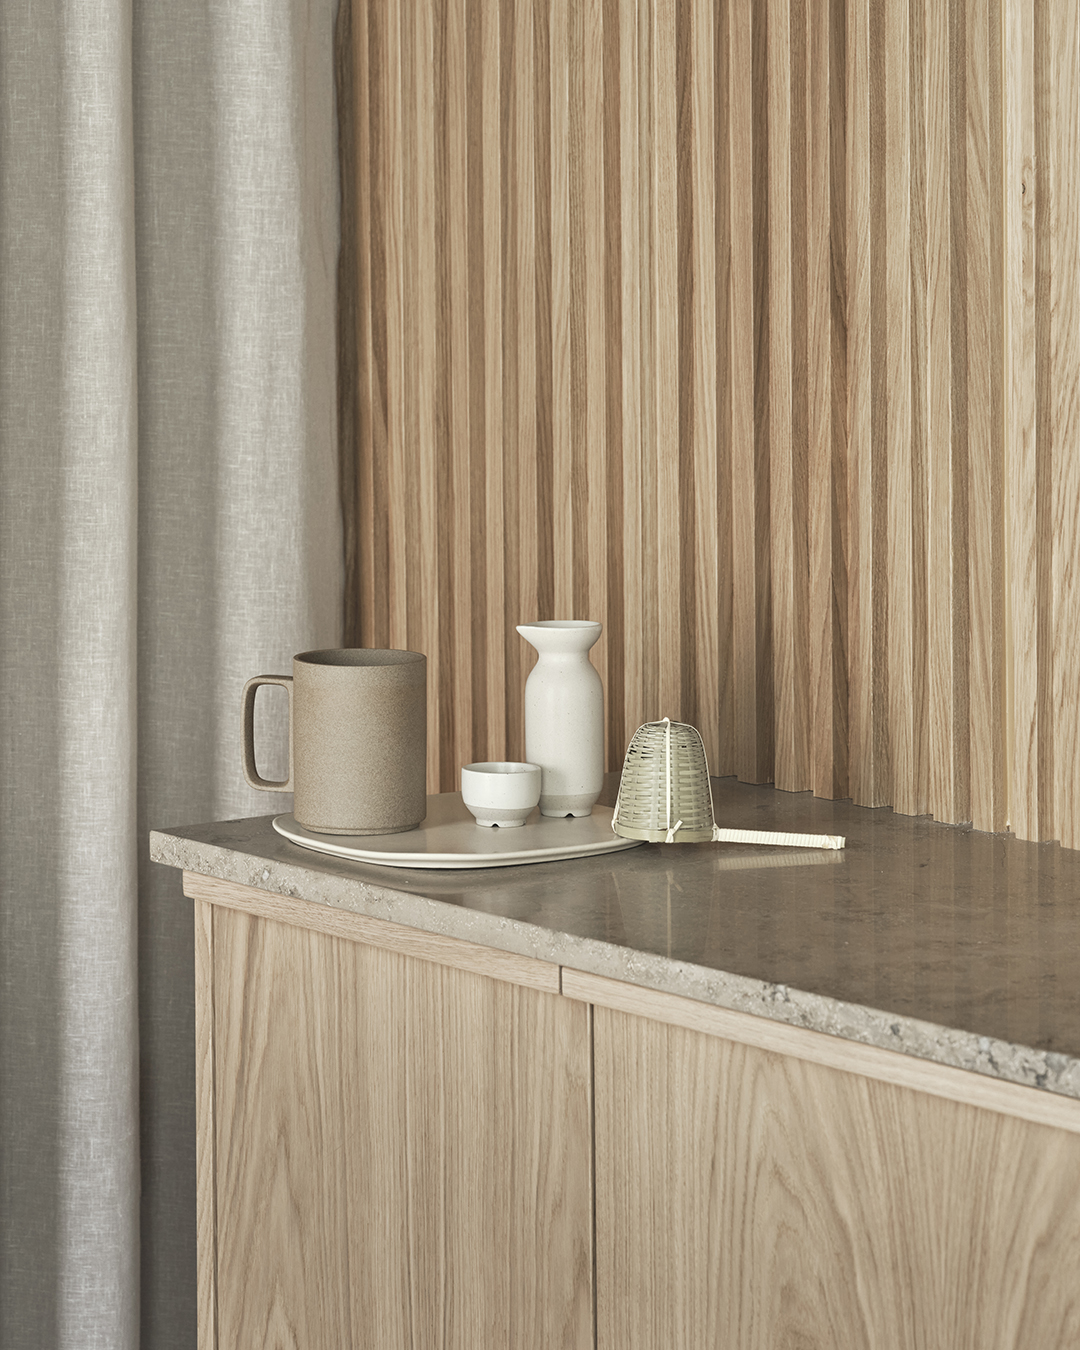 Vertical slatted wall panelling and minimalist kitchen unit in pale oak | Eight inspiring kitchen ideas from Nordiska Kök's new showroom | These Four Walls blog